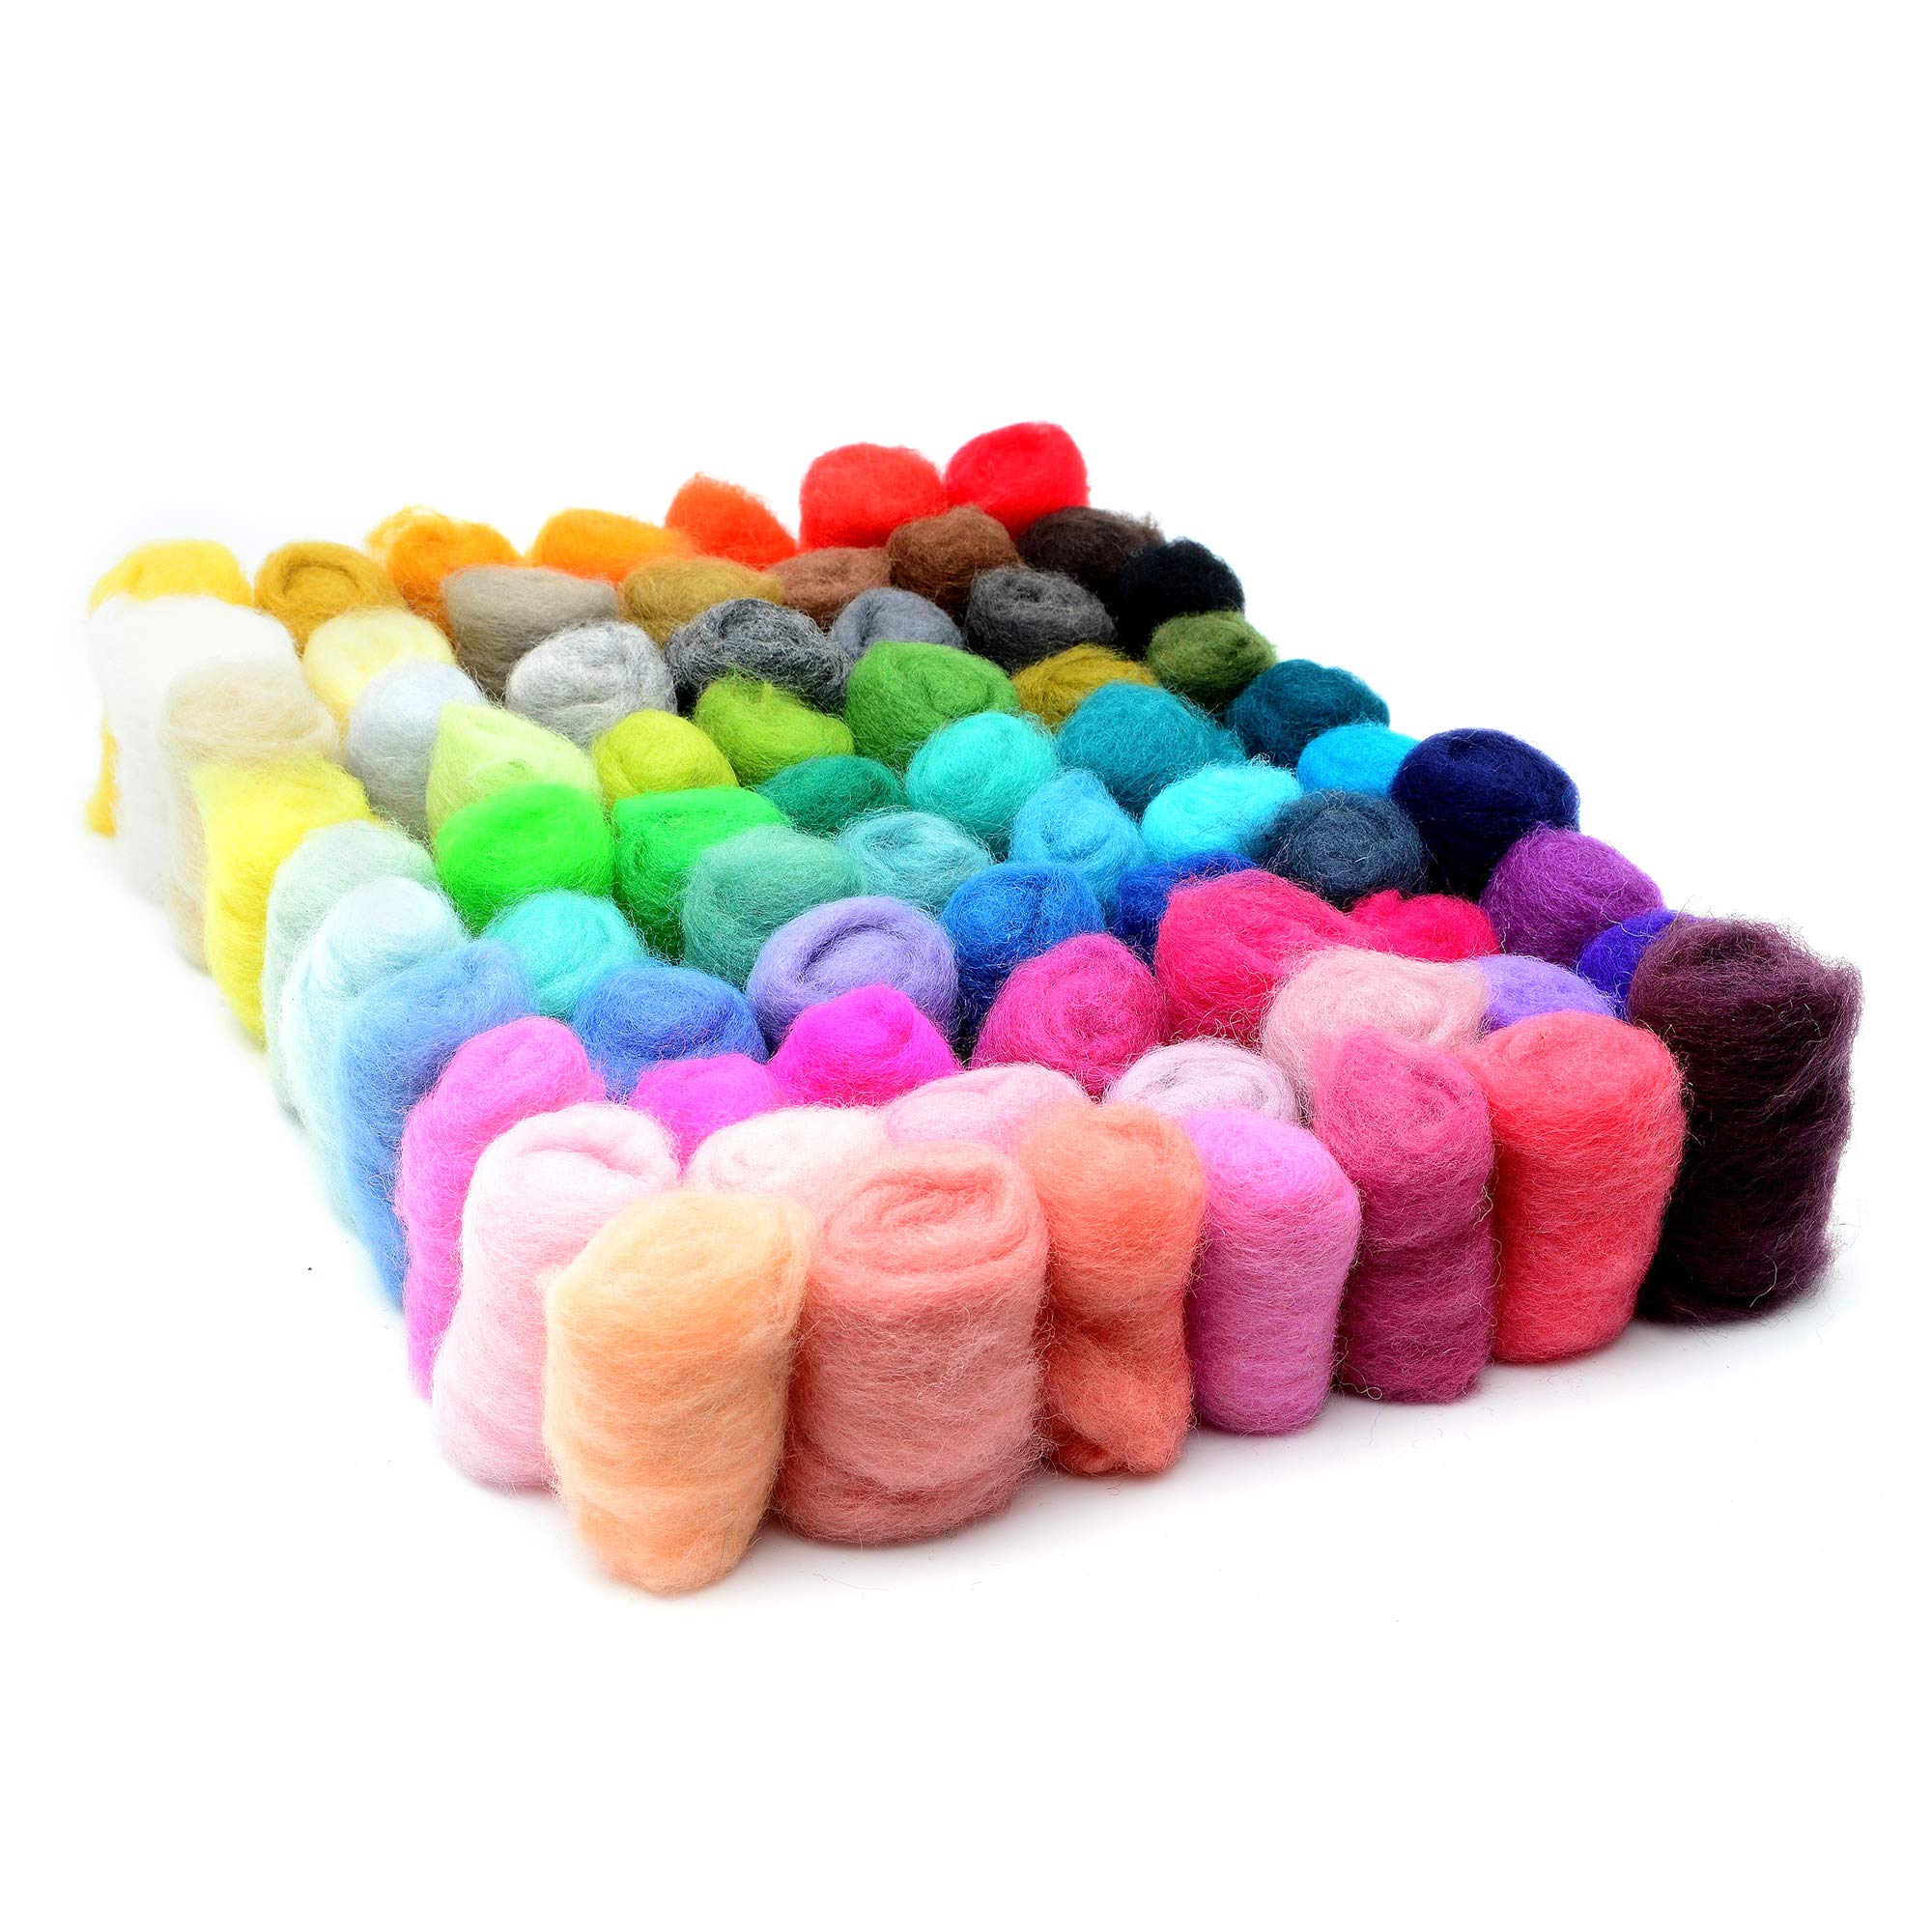 Glaciart One Needle Felting Wool - 70 Colors (6gram per Color) Unspun Needle Felt Roving and Felting Yarn Craft Supplies - Multi Colored Soft Raw Fiber for Fabric, Material and Crafting